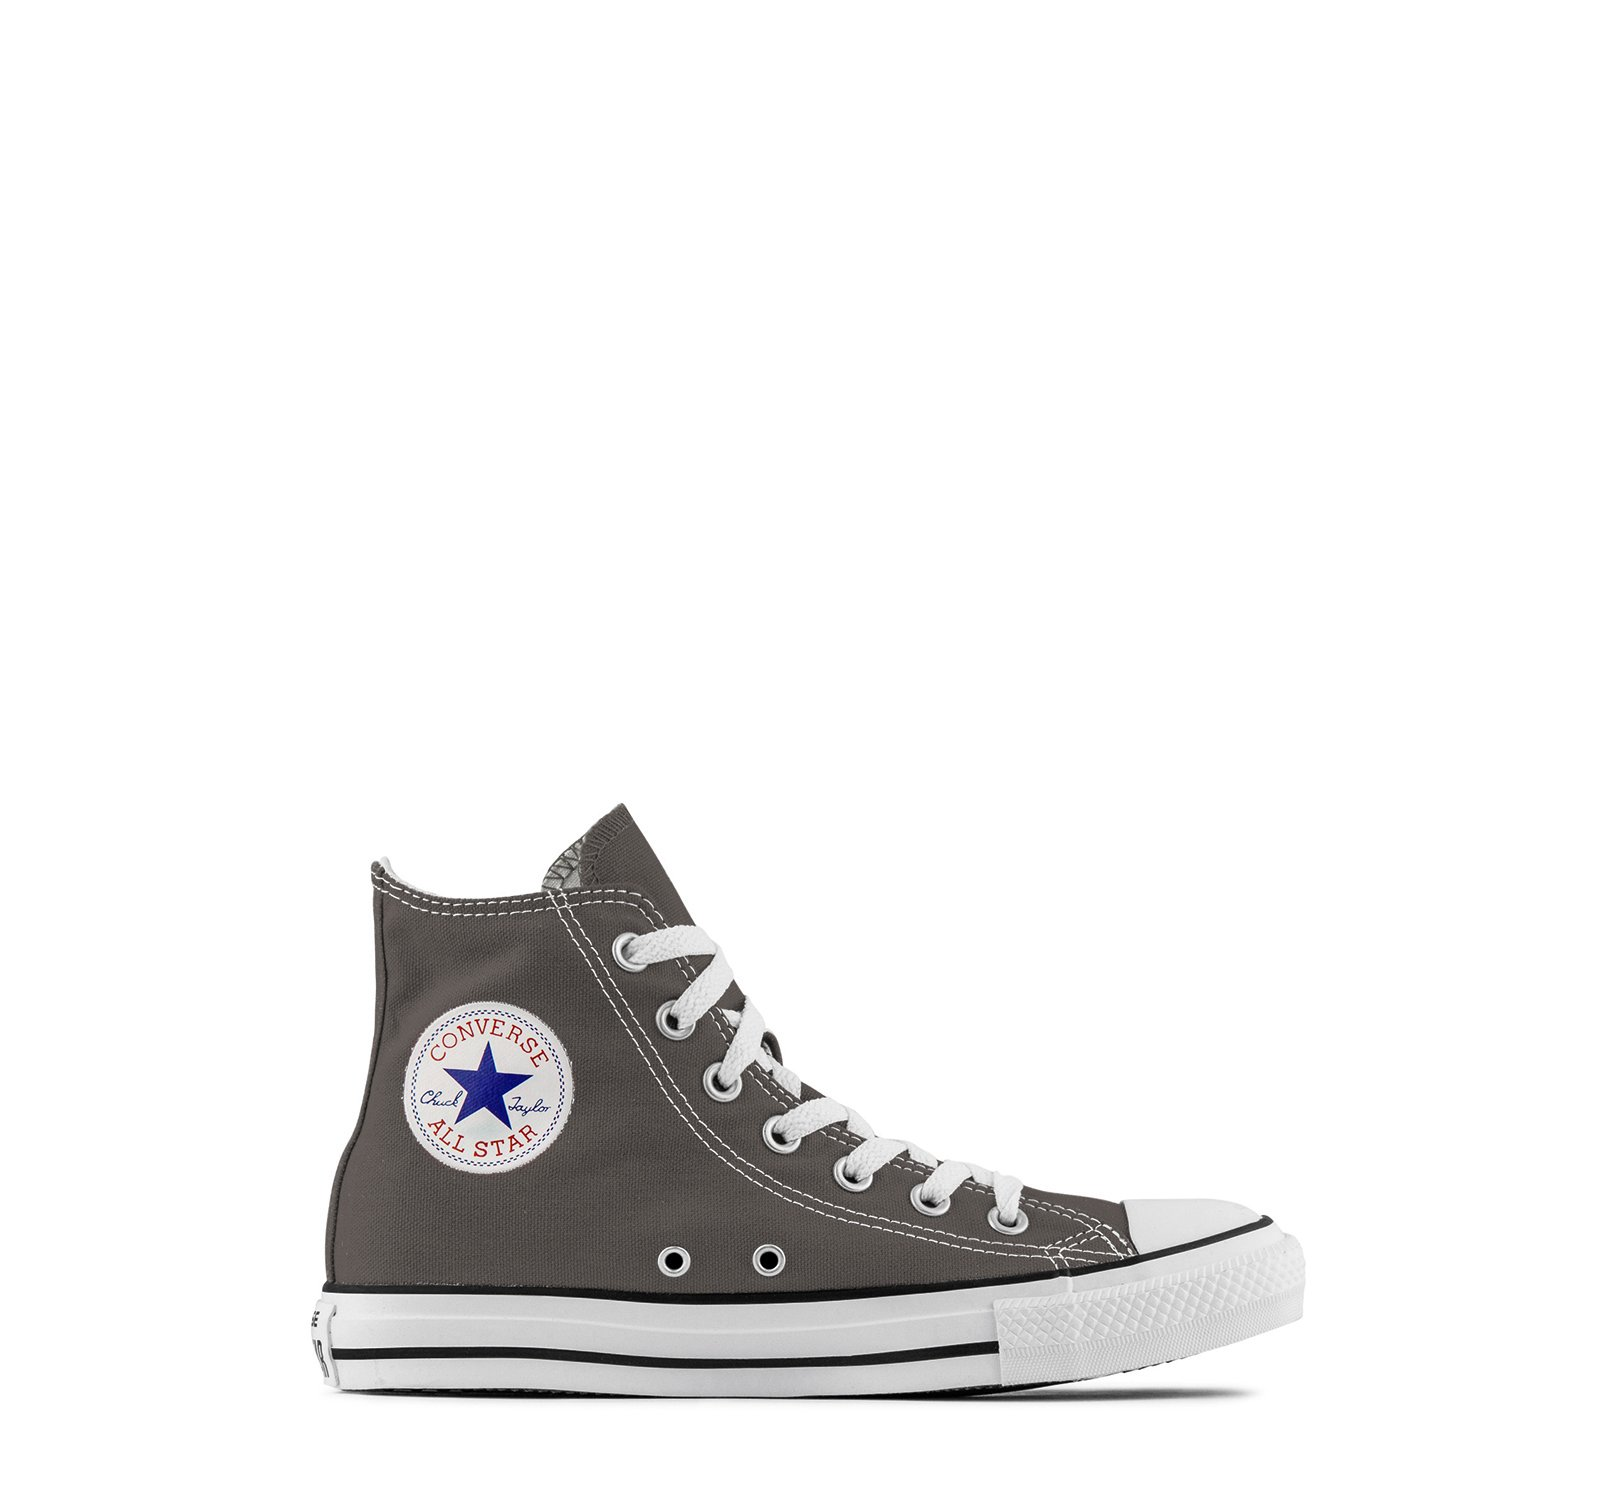 8e637023809d0d Converse Chuck Taylor All Star Hi Top Kids Sneaker in Charcoal ...